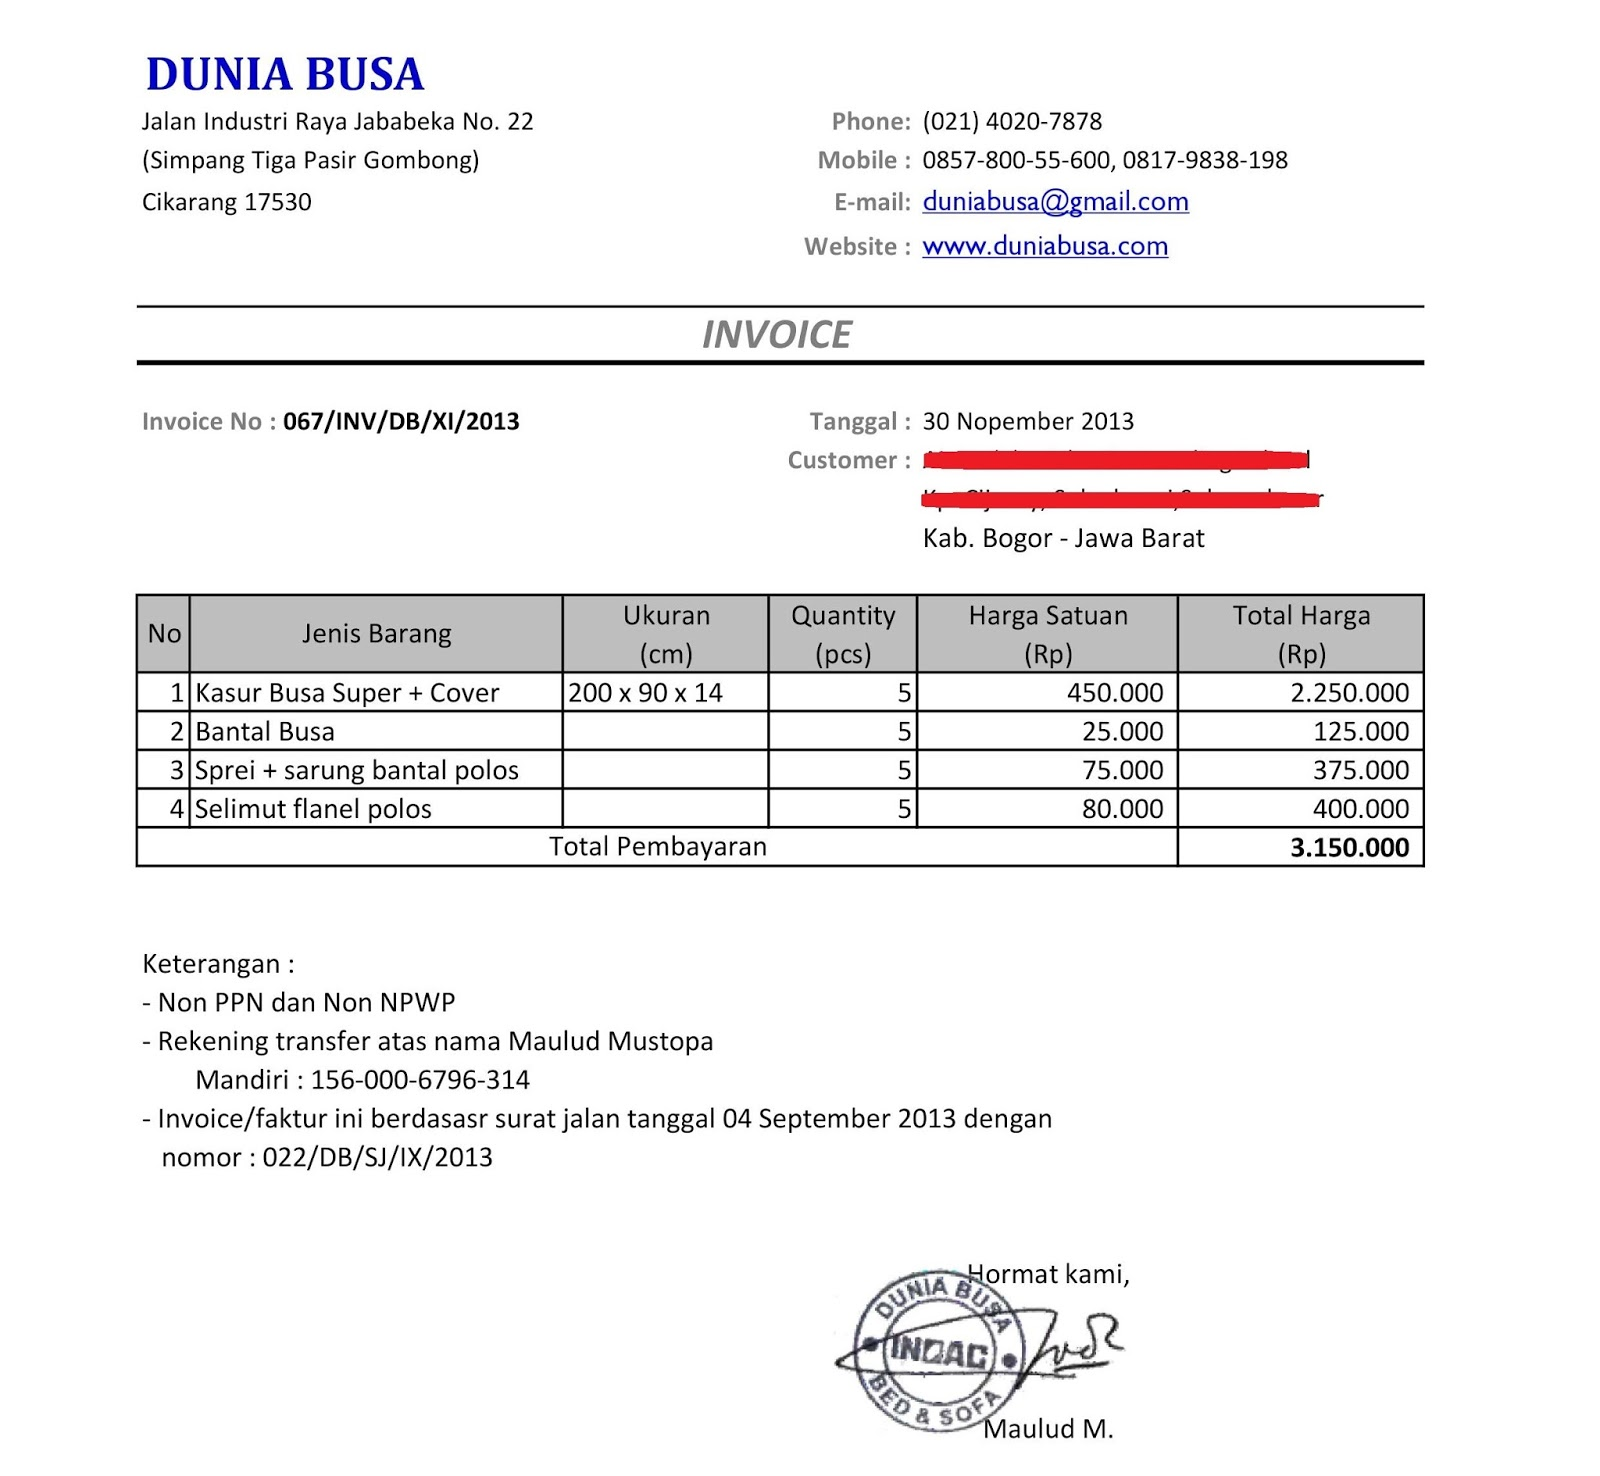 Usdgus  Marvelous Free Invoice Online  Create Invoice Online  Invoice Template  With Foxy Contoh Format Invoice Atau Surat Tagihan  Brankas Arsip  Free Invoice Online With Amazing Rent Receipt In Word Format Also Sample Of Receipt Form In Addition Tneb E Receipt And Internal Control For Cash Receipts As Well As How To Send A Read Receipt Additionally Deposit Receipt Template Free From Sklepco With Usdgus  Foxy Free Invoice Online  Create Invoice Online  Invoice Template  With Amazing Contoh Format Invoice Atau Surat Tagihan  Brankas Arsip  Free Invoice Online And Marvelous Rent Receipt In Word Format Also Sample Of Receipt Form In Addition Tneb E Receipt From Sklepco